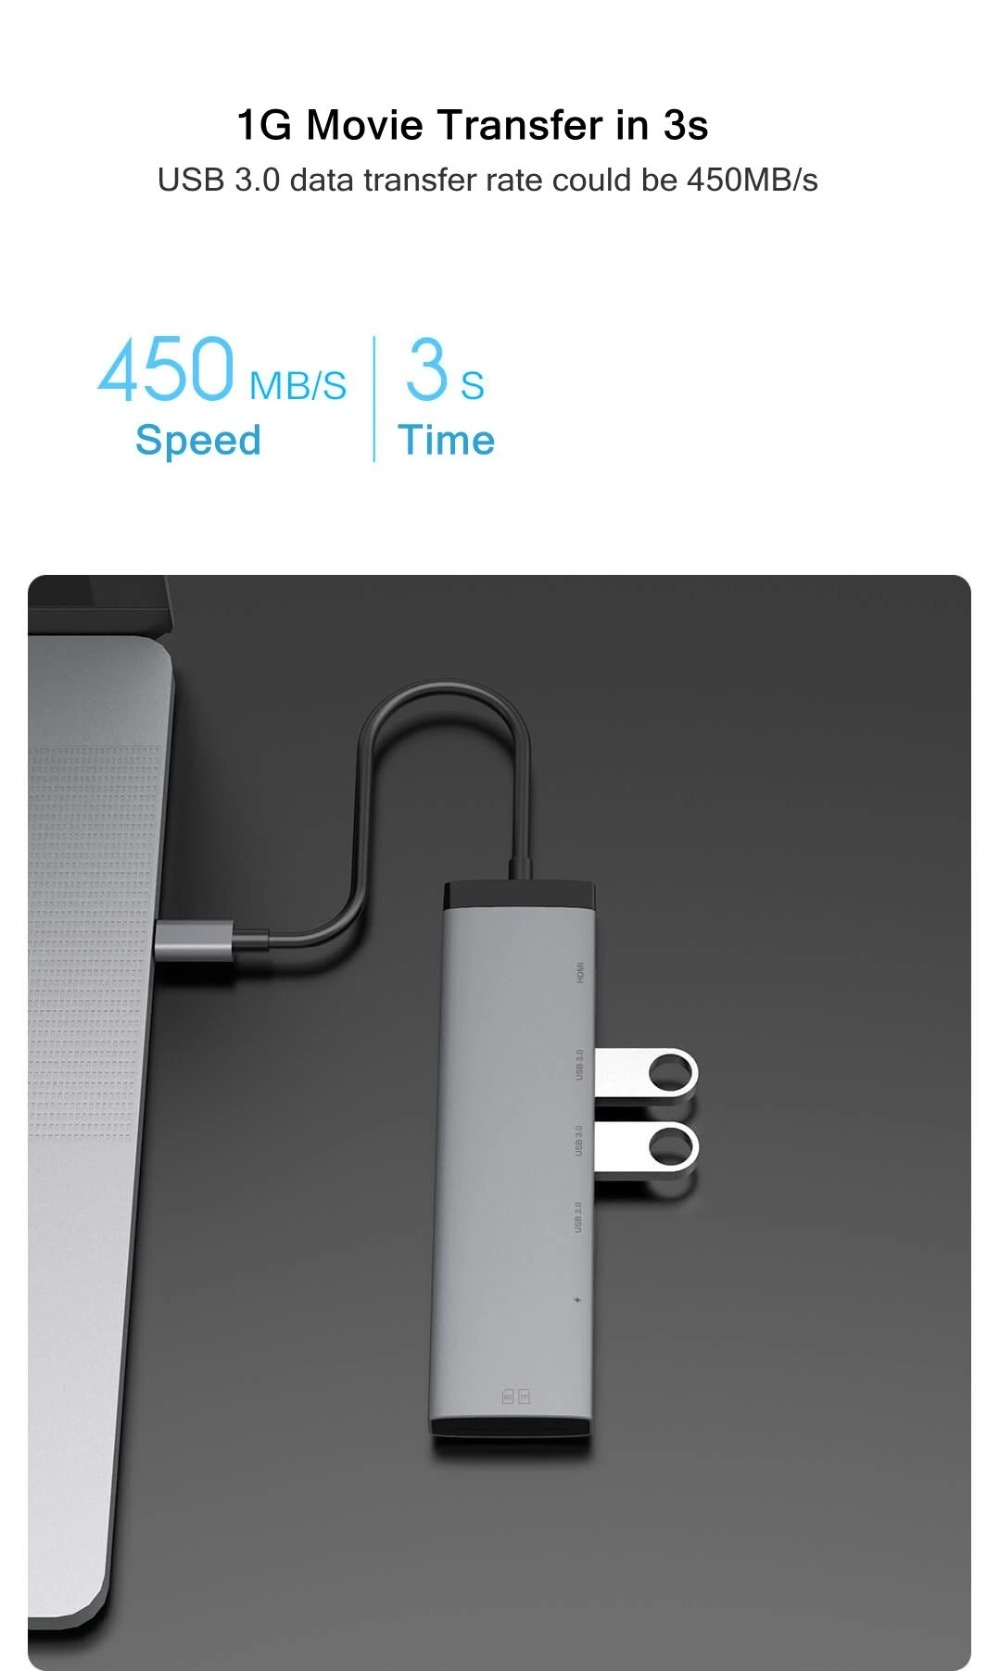 Miiiw MWCMA01 7-in-1 USB Type C Hub Docking Station Adapter with 4K HDMI HD Display / USB-C Power Delivery / USB 3.0 / SD / TF Card Reader - Dark Gray